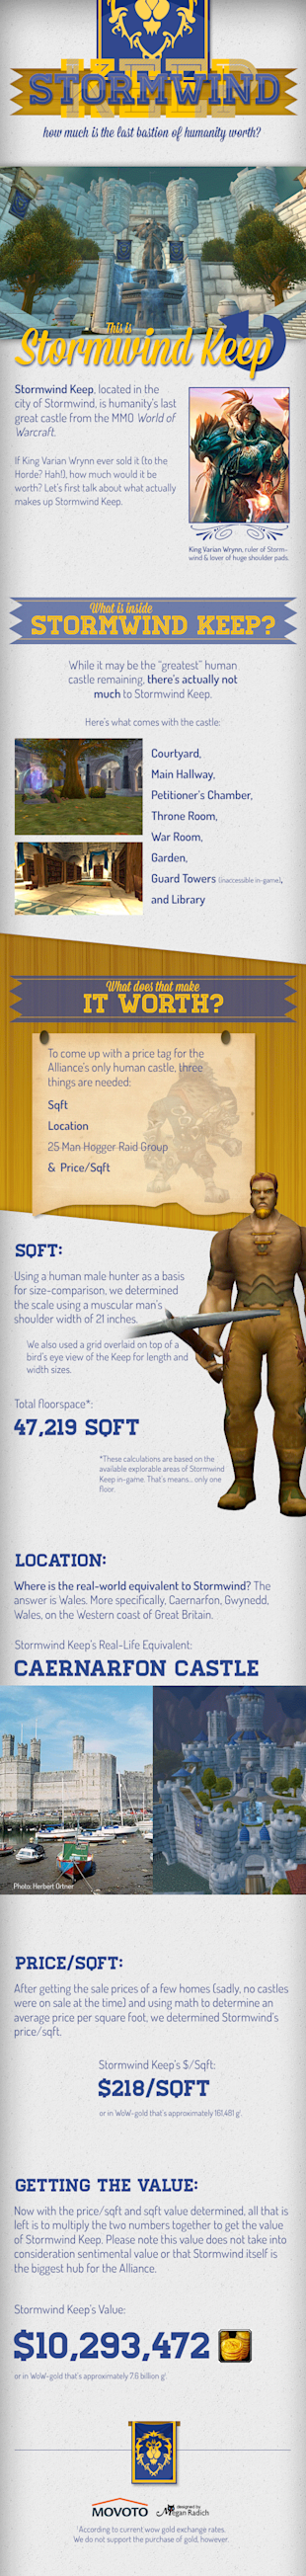 World of Warcraft's Stormwind Keep For Sale at the Auction House image stormwind infographic